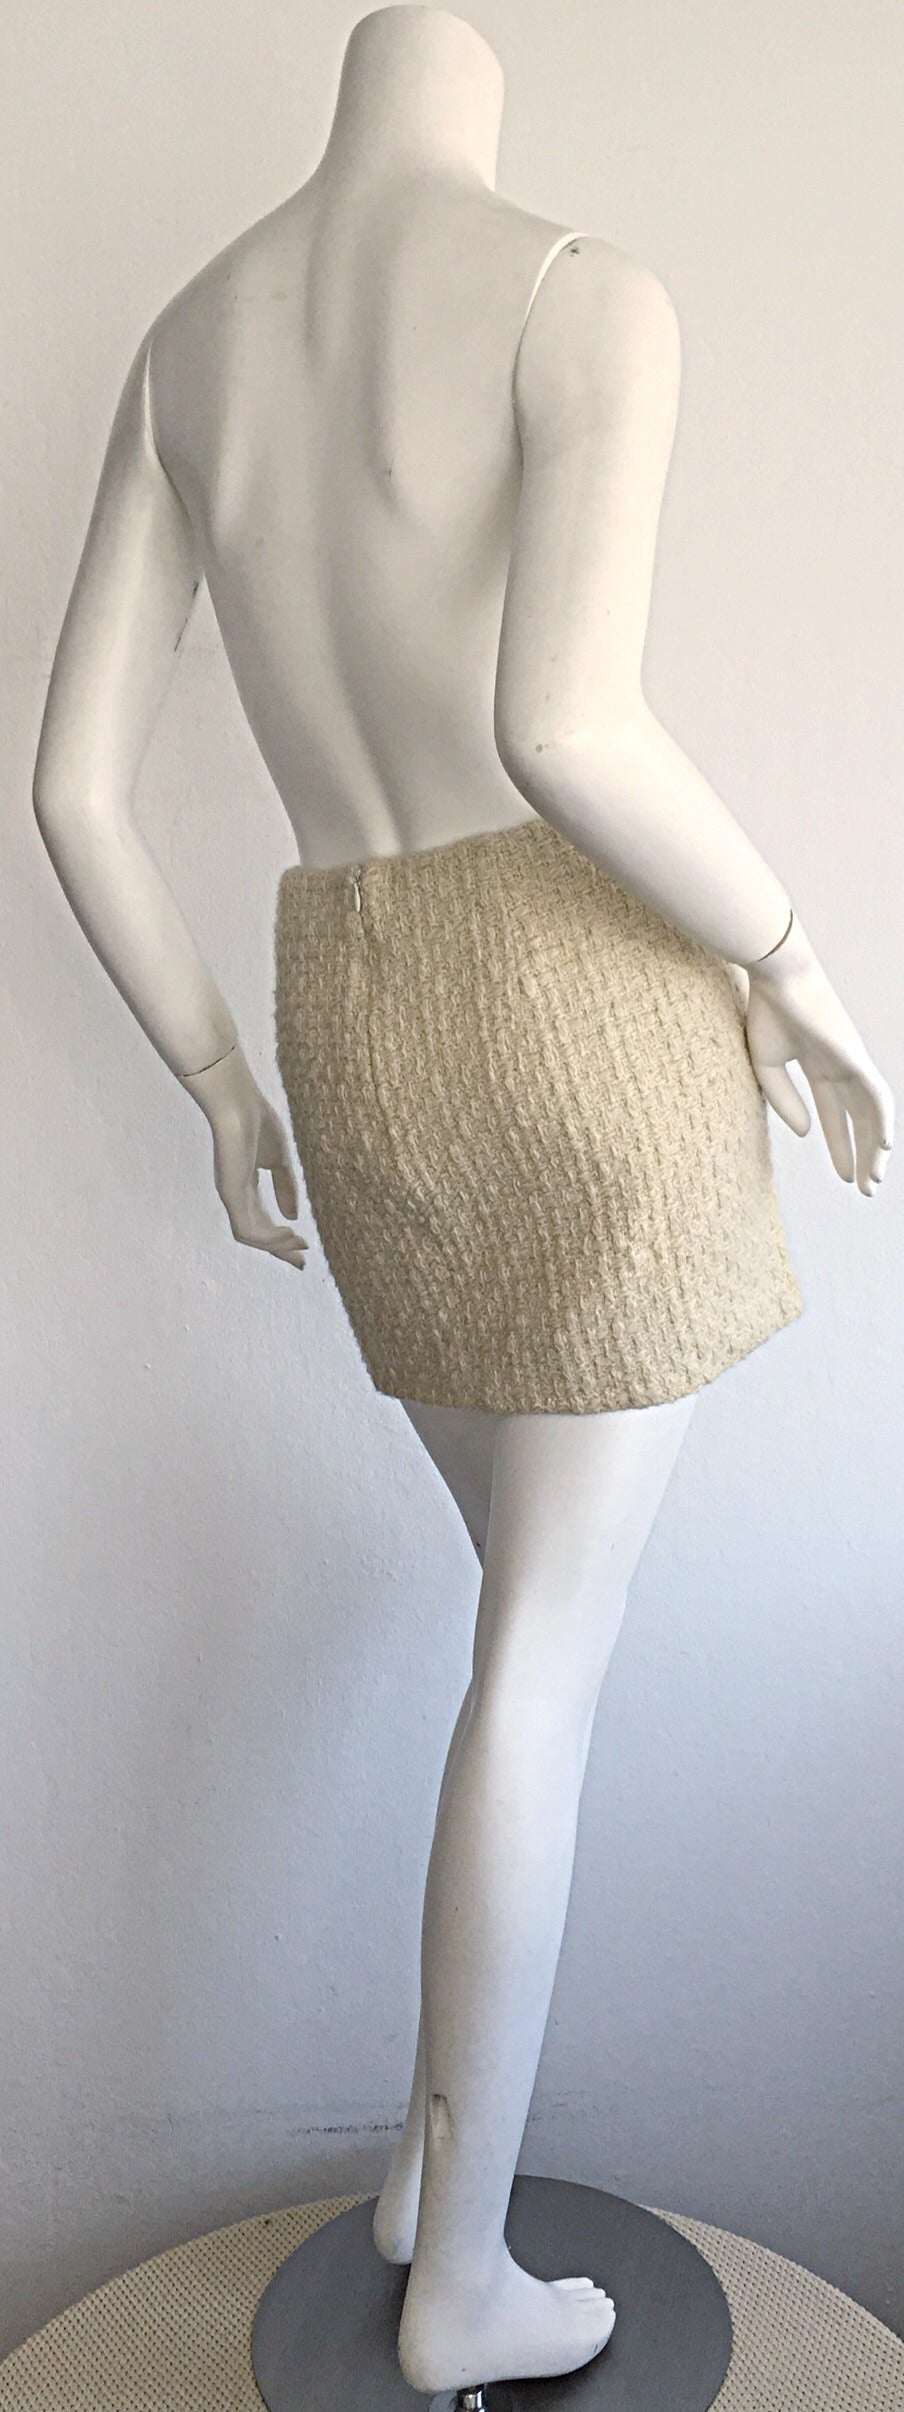 Sexy 1990s Vintage Gianni Versace Couture Ivory Off - White Cashmere Mini Skirt In Excellent Condition For Sale In Chicago, IL